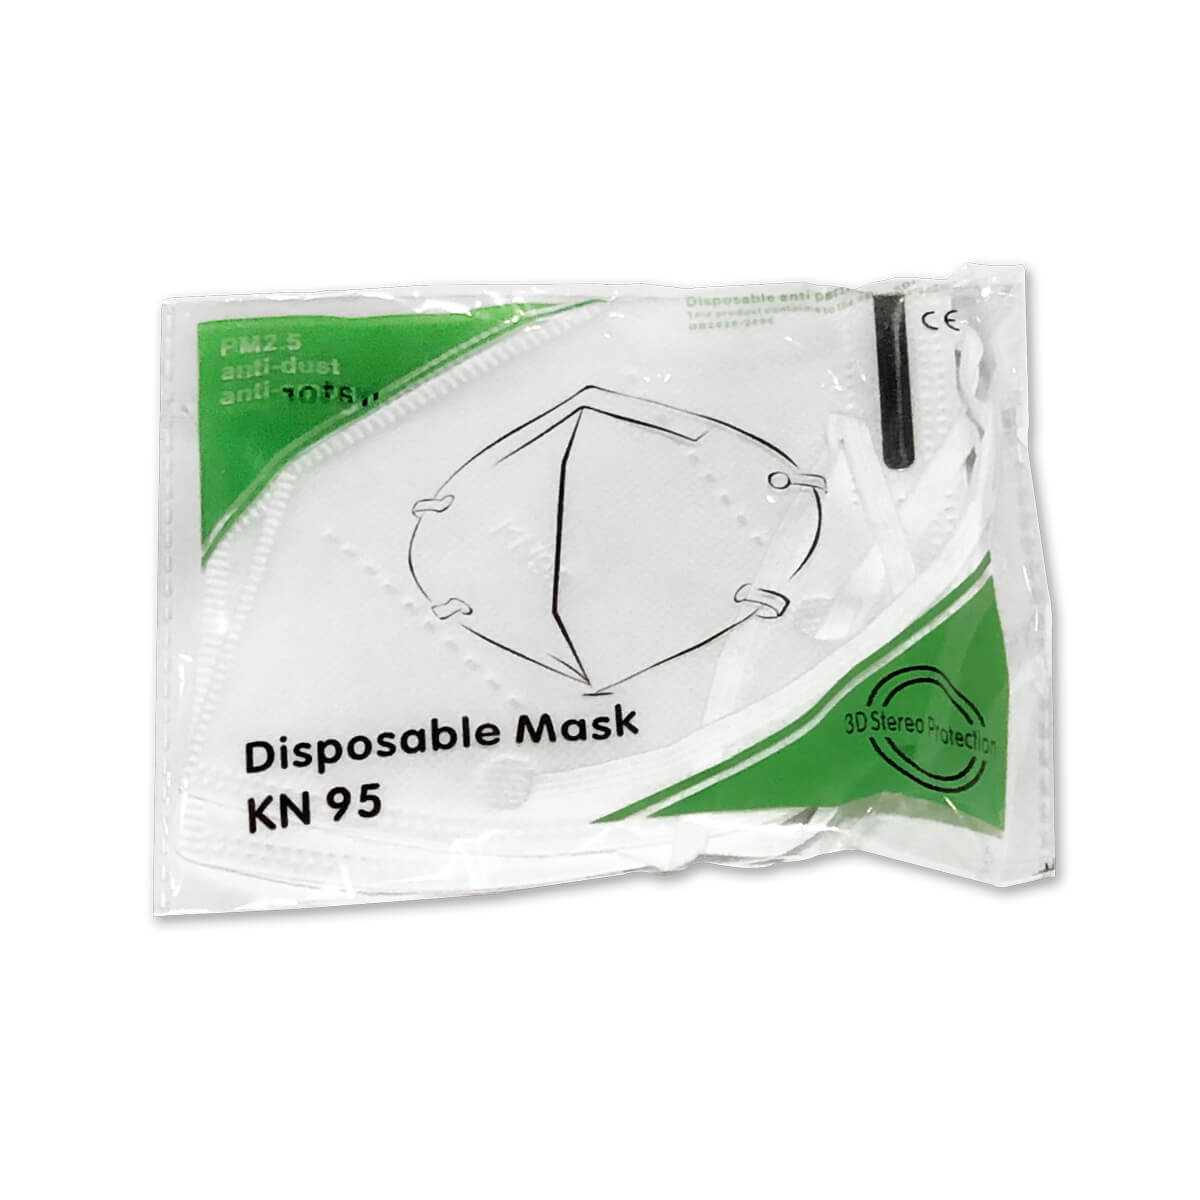 A pack of 2 KN95 Masks to protect yourself & people around you from Covid-19, safety measures required during the pandemic, skyline entourage